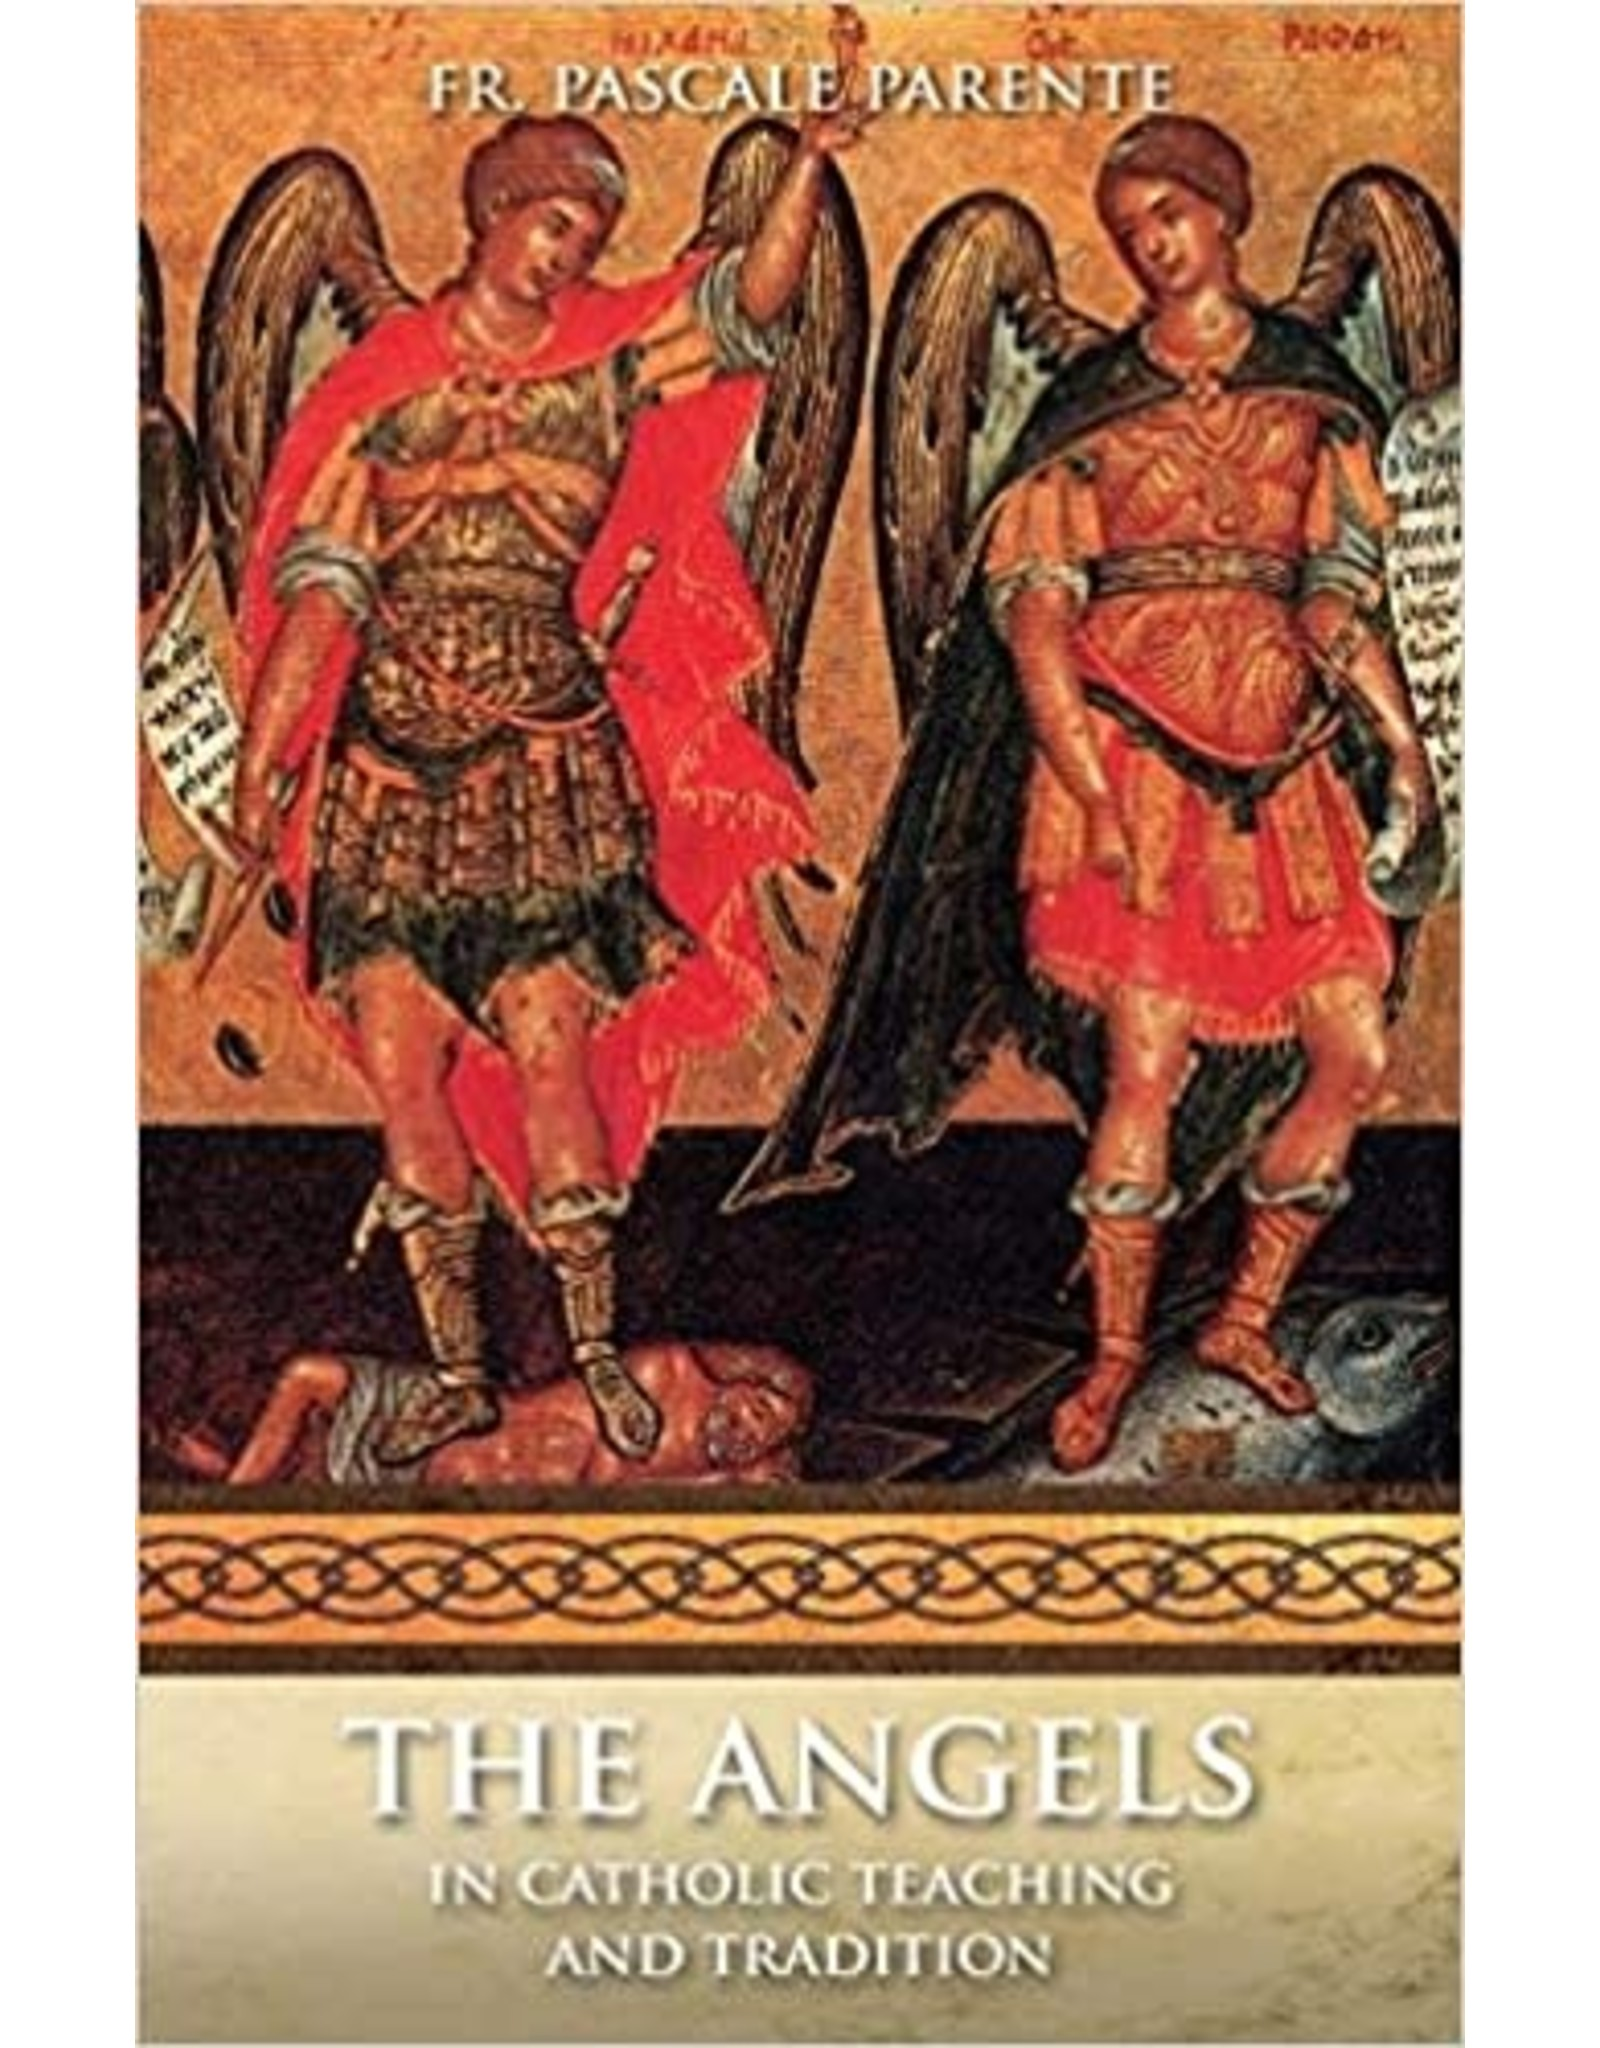 The Angels: In Catholic Teaching & Tradition